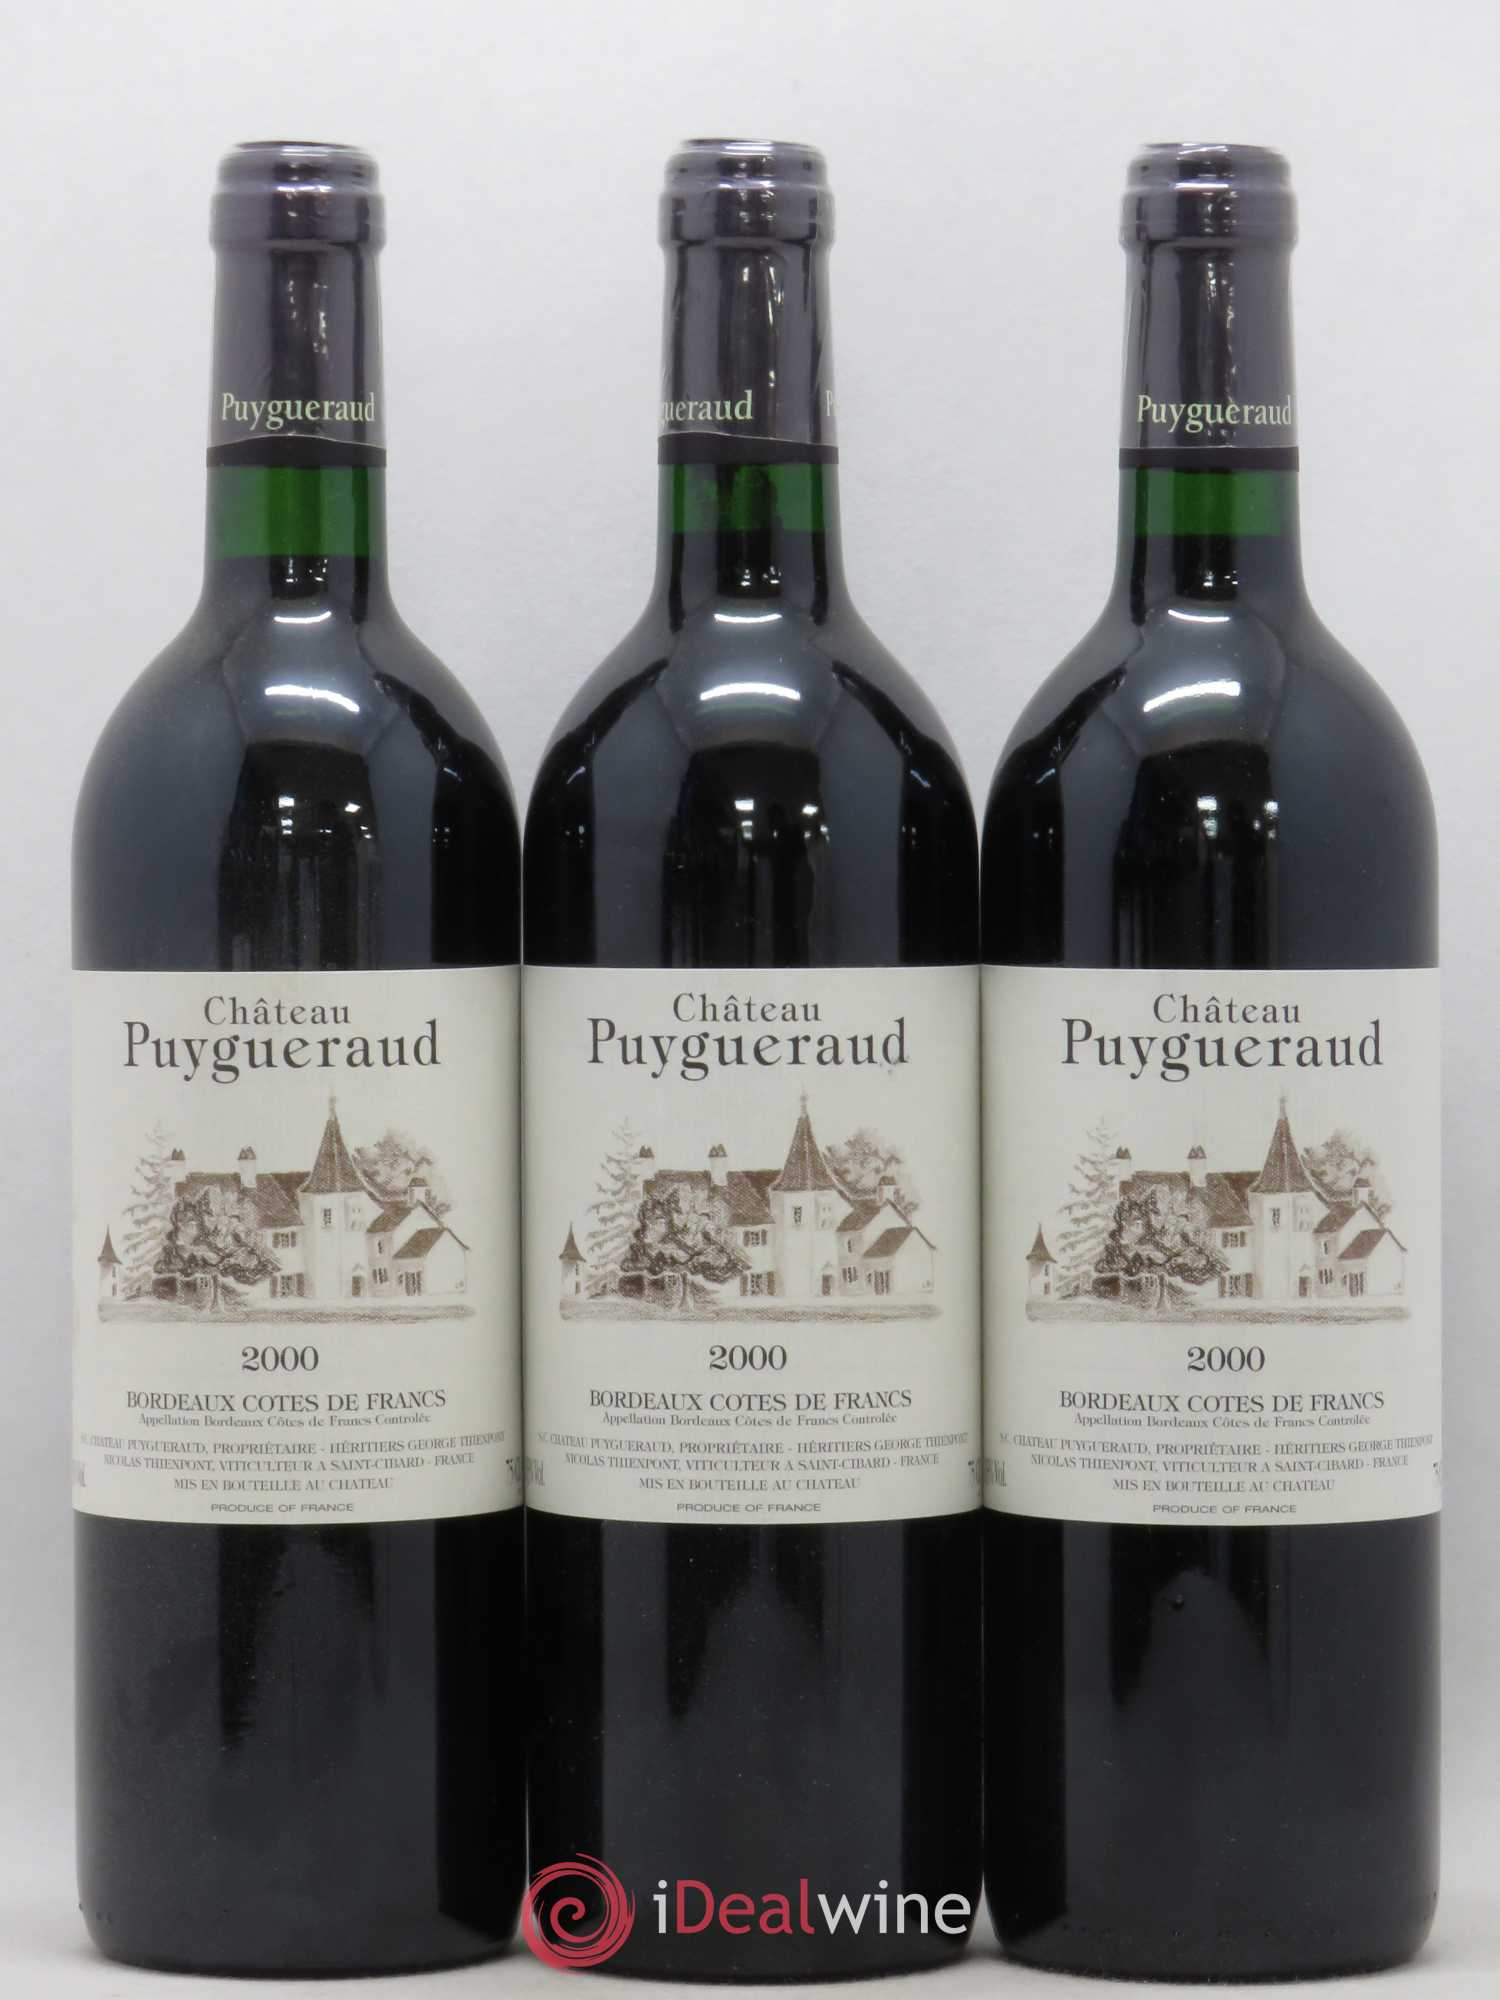 Puygueraud (no reserve) 2000 - Lot of 3 Bottles